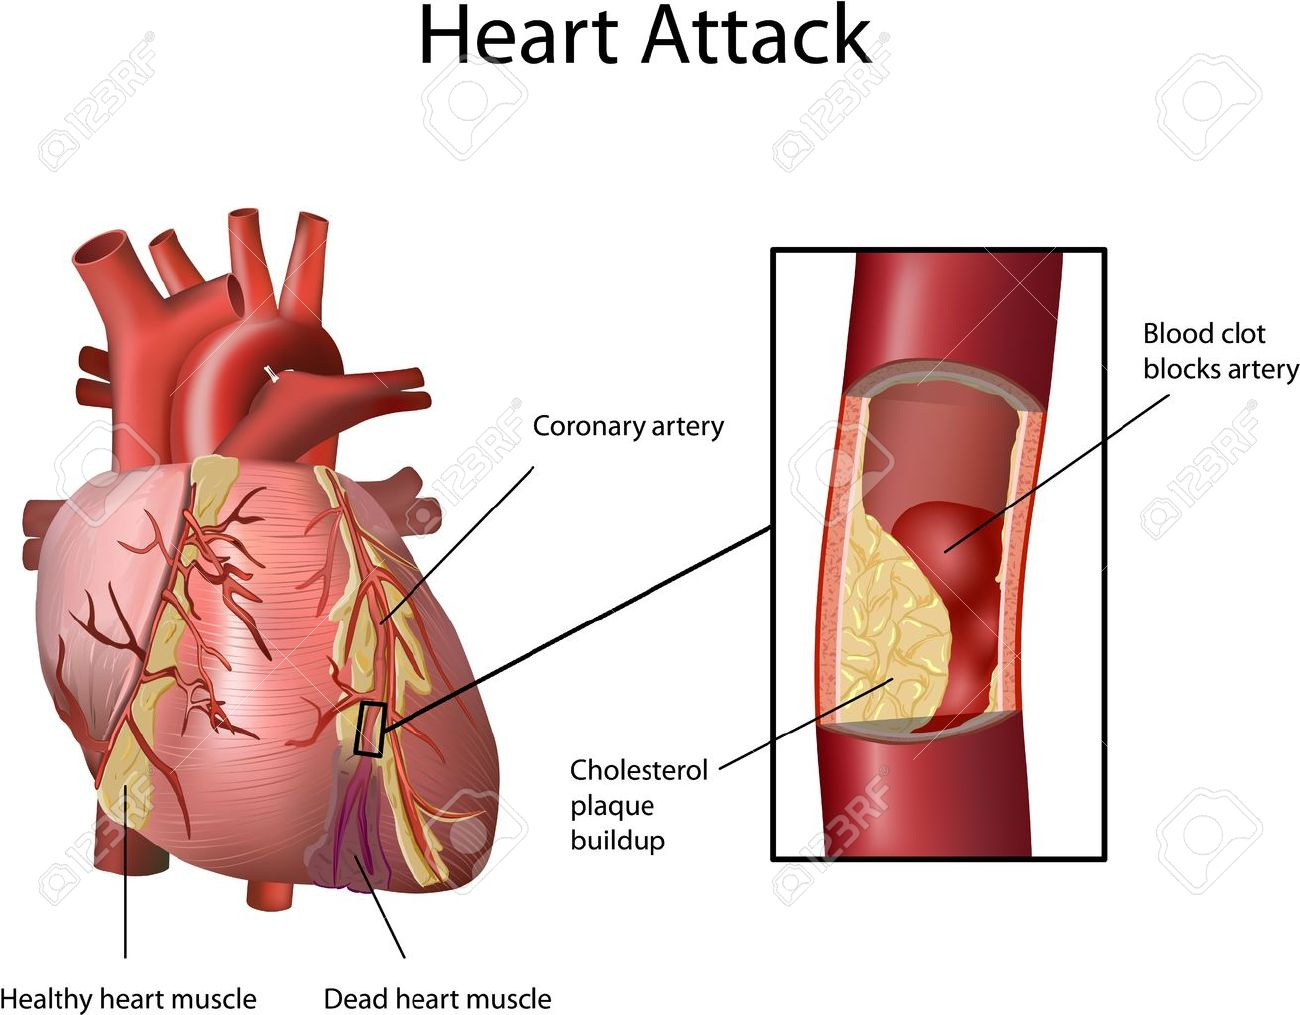 Heart attack cholesterol plaque built up in artery atherosclerosis heart attack cholesterol plaque built up in artery atherosclerosis illustration with annotation ccuart Images